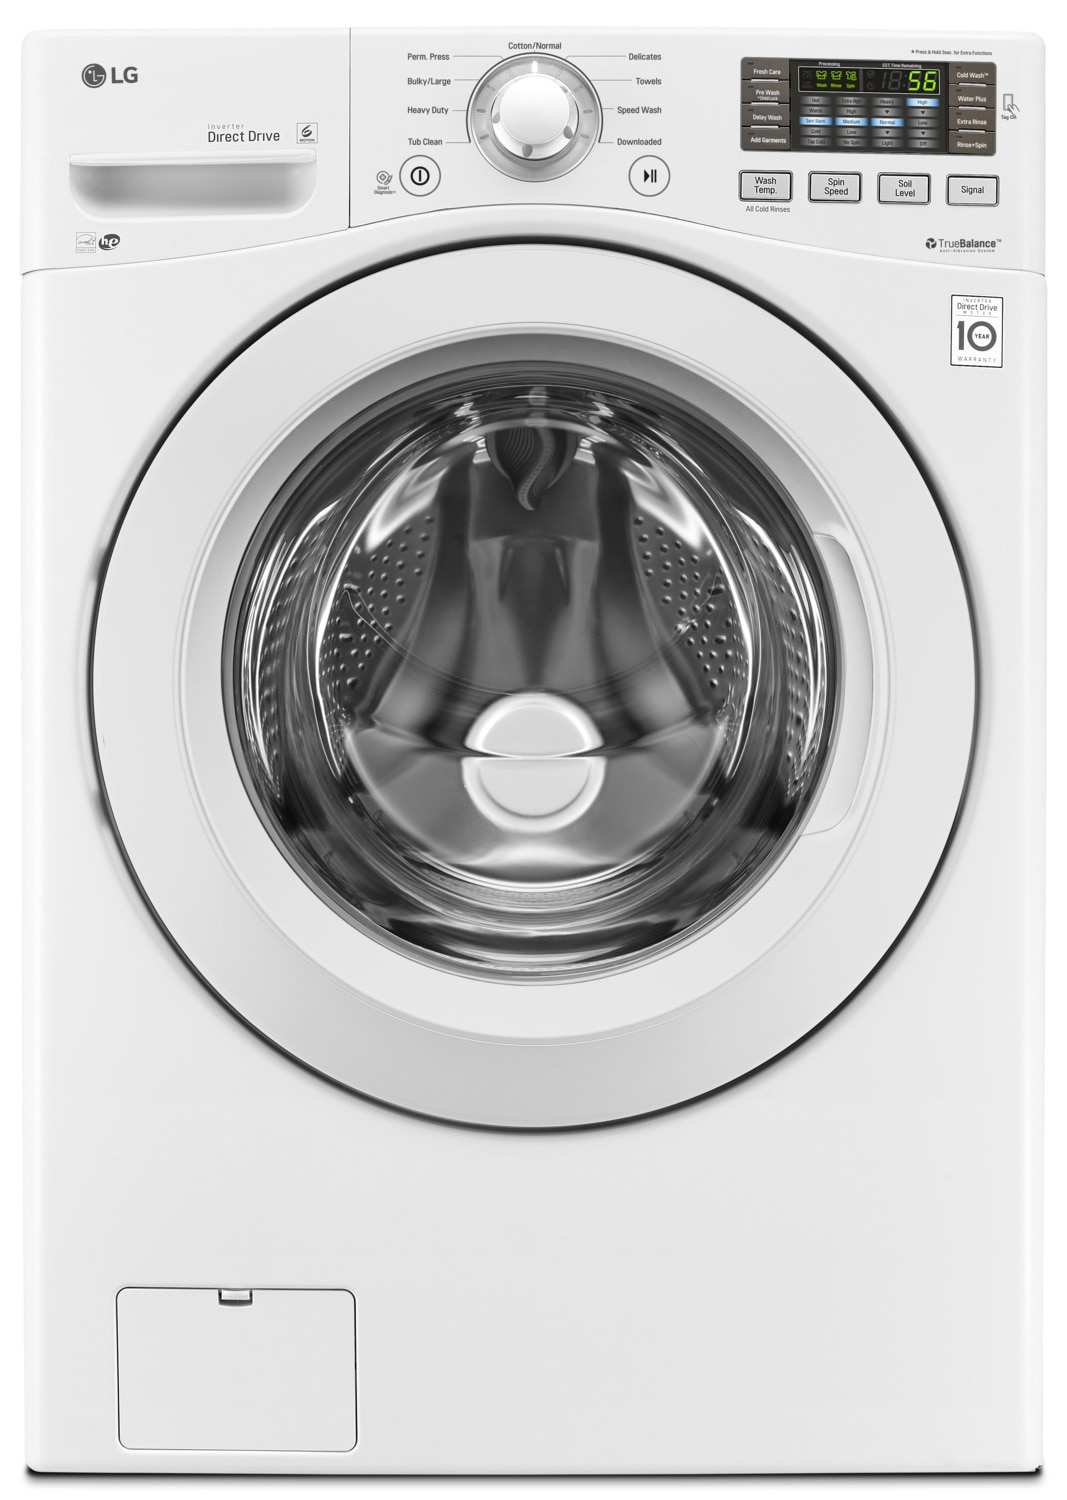 LG 7.4 Cu. Ft. Ultra-Large Capacity Electric Dryer – DLE3180W